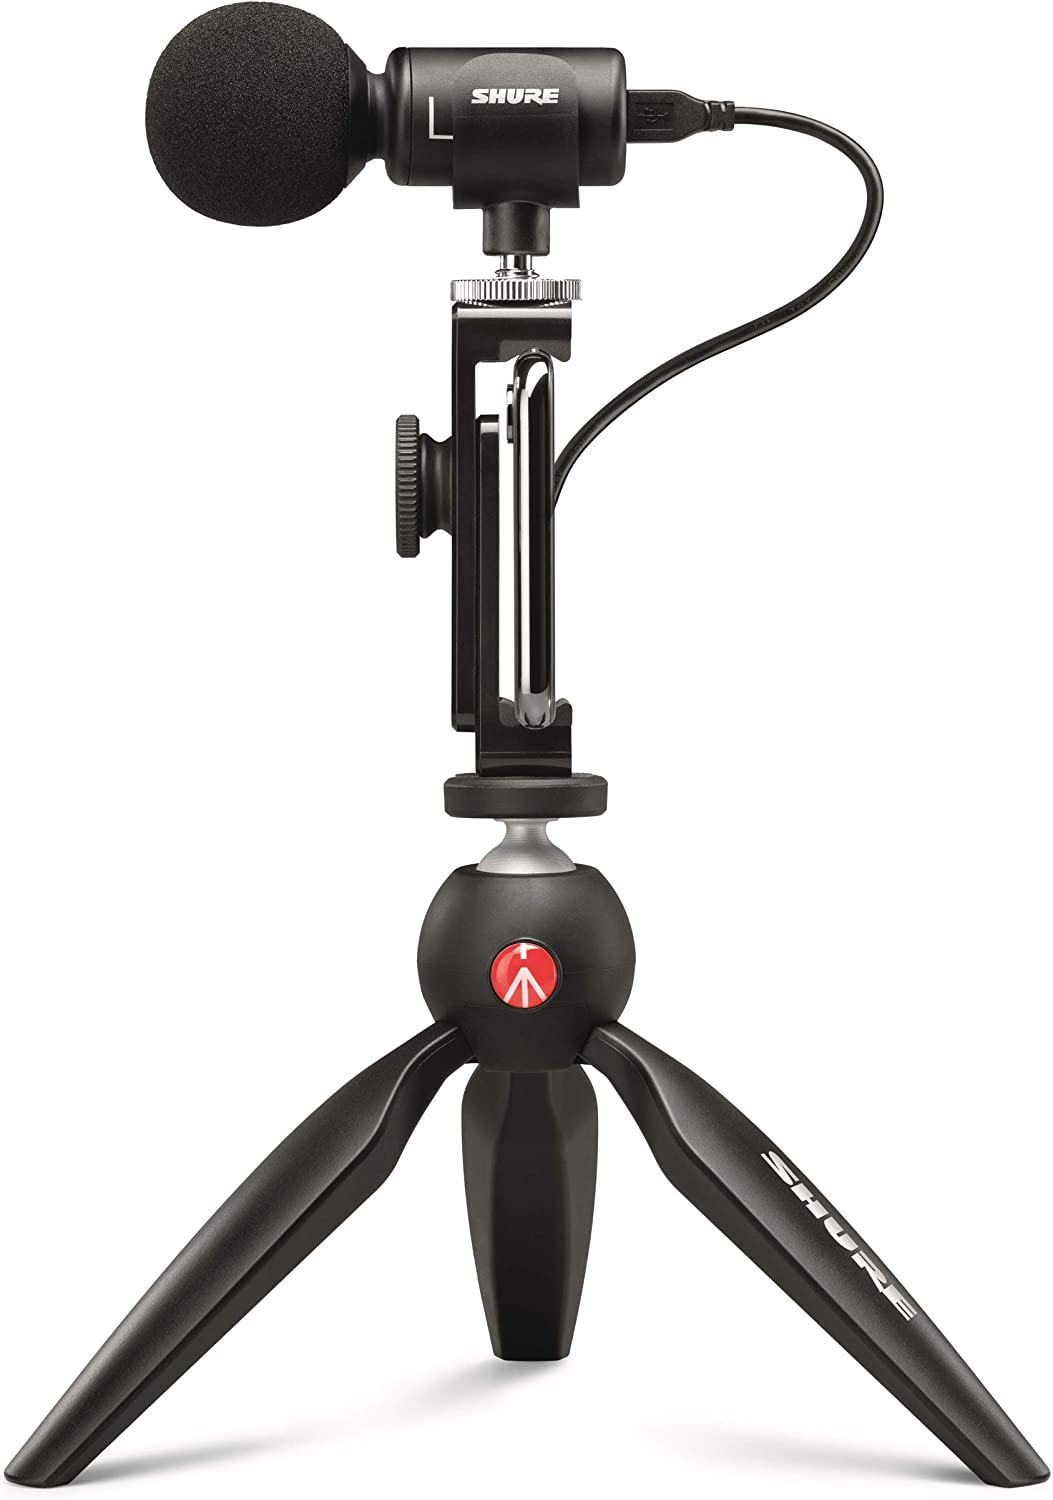 Shure MOTIV MV88+ Video Kit with Digital Stereo Condenser Microphone for Apple and Android, Black, DIG-VIDKIT